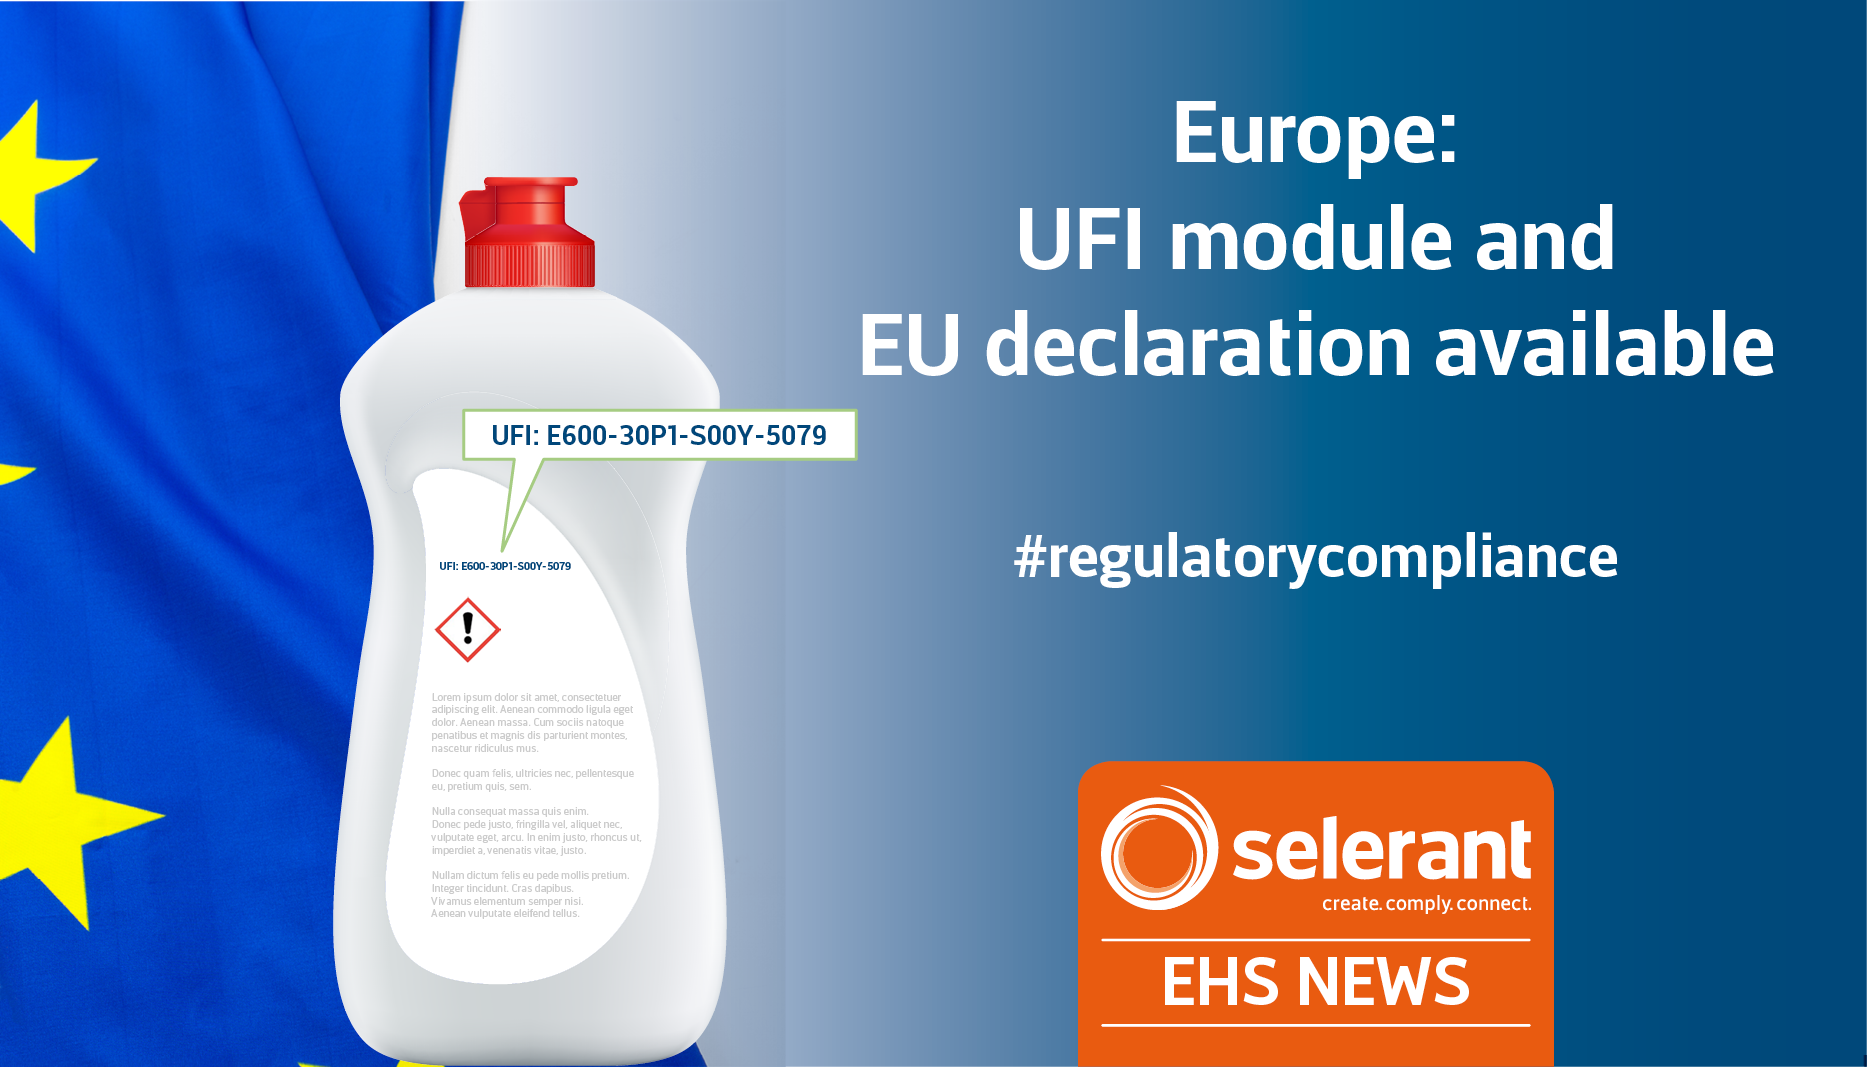 Europe: UFI module and EU declaration available